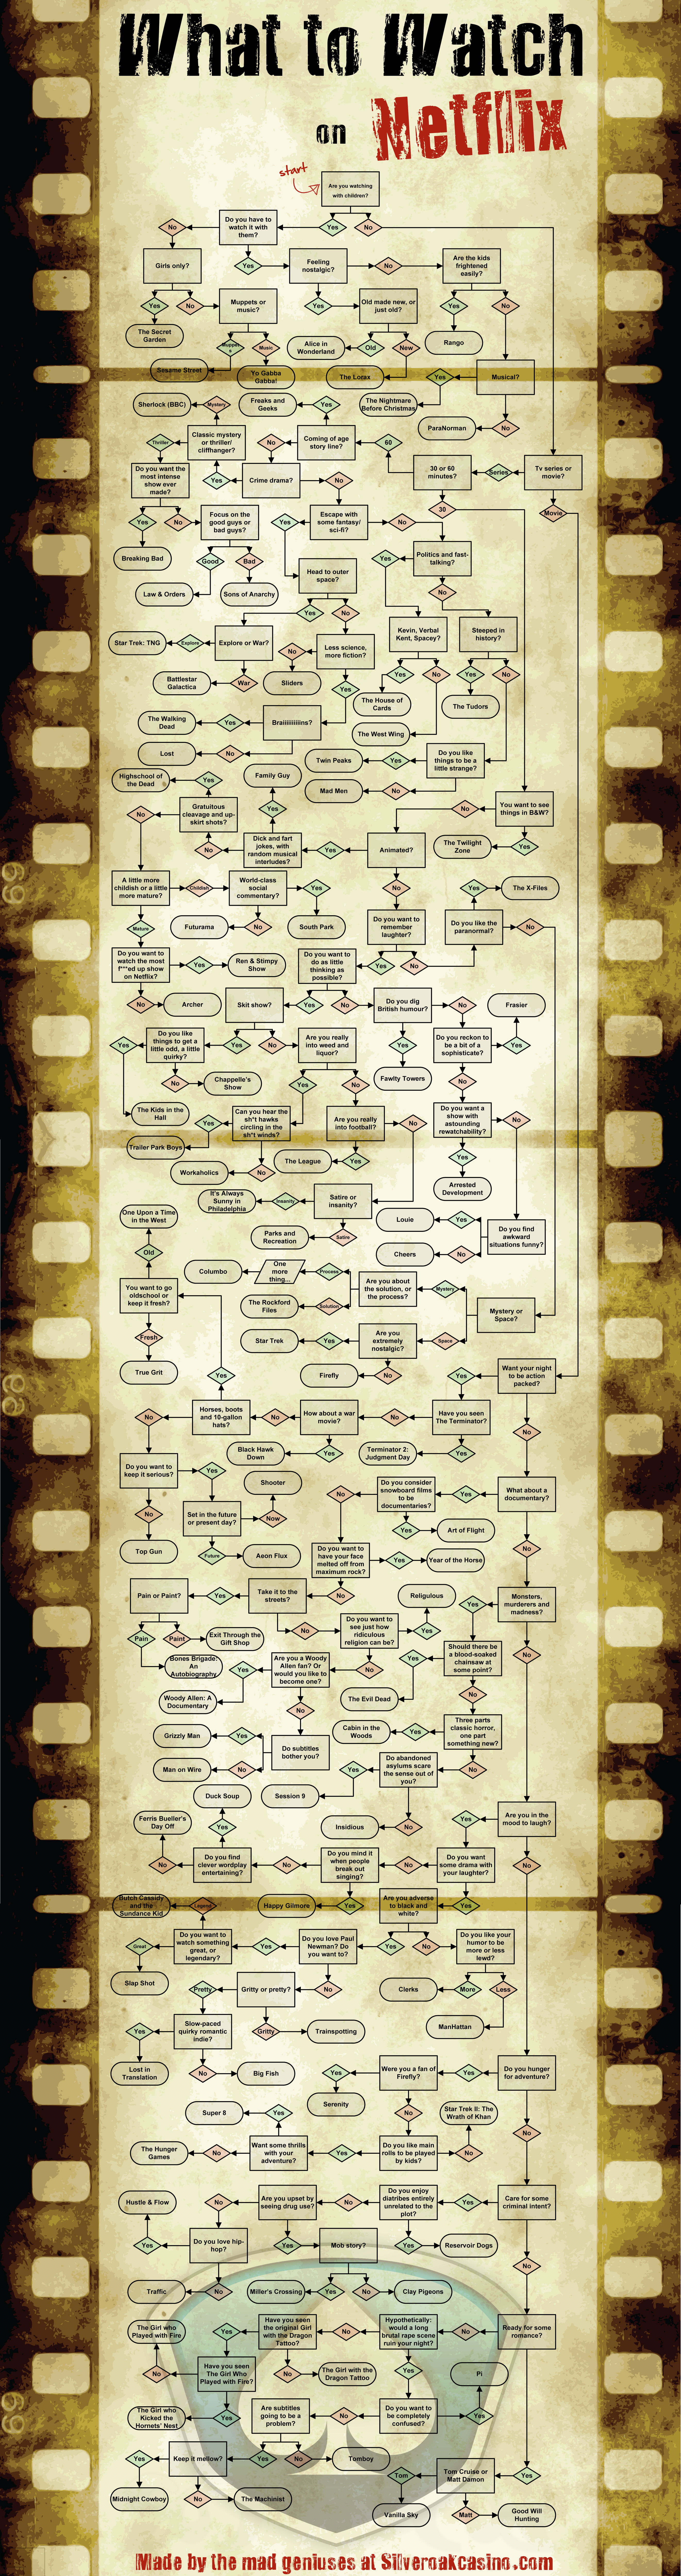 What to Watch on Netflix | Visual.ly